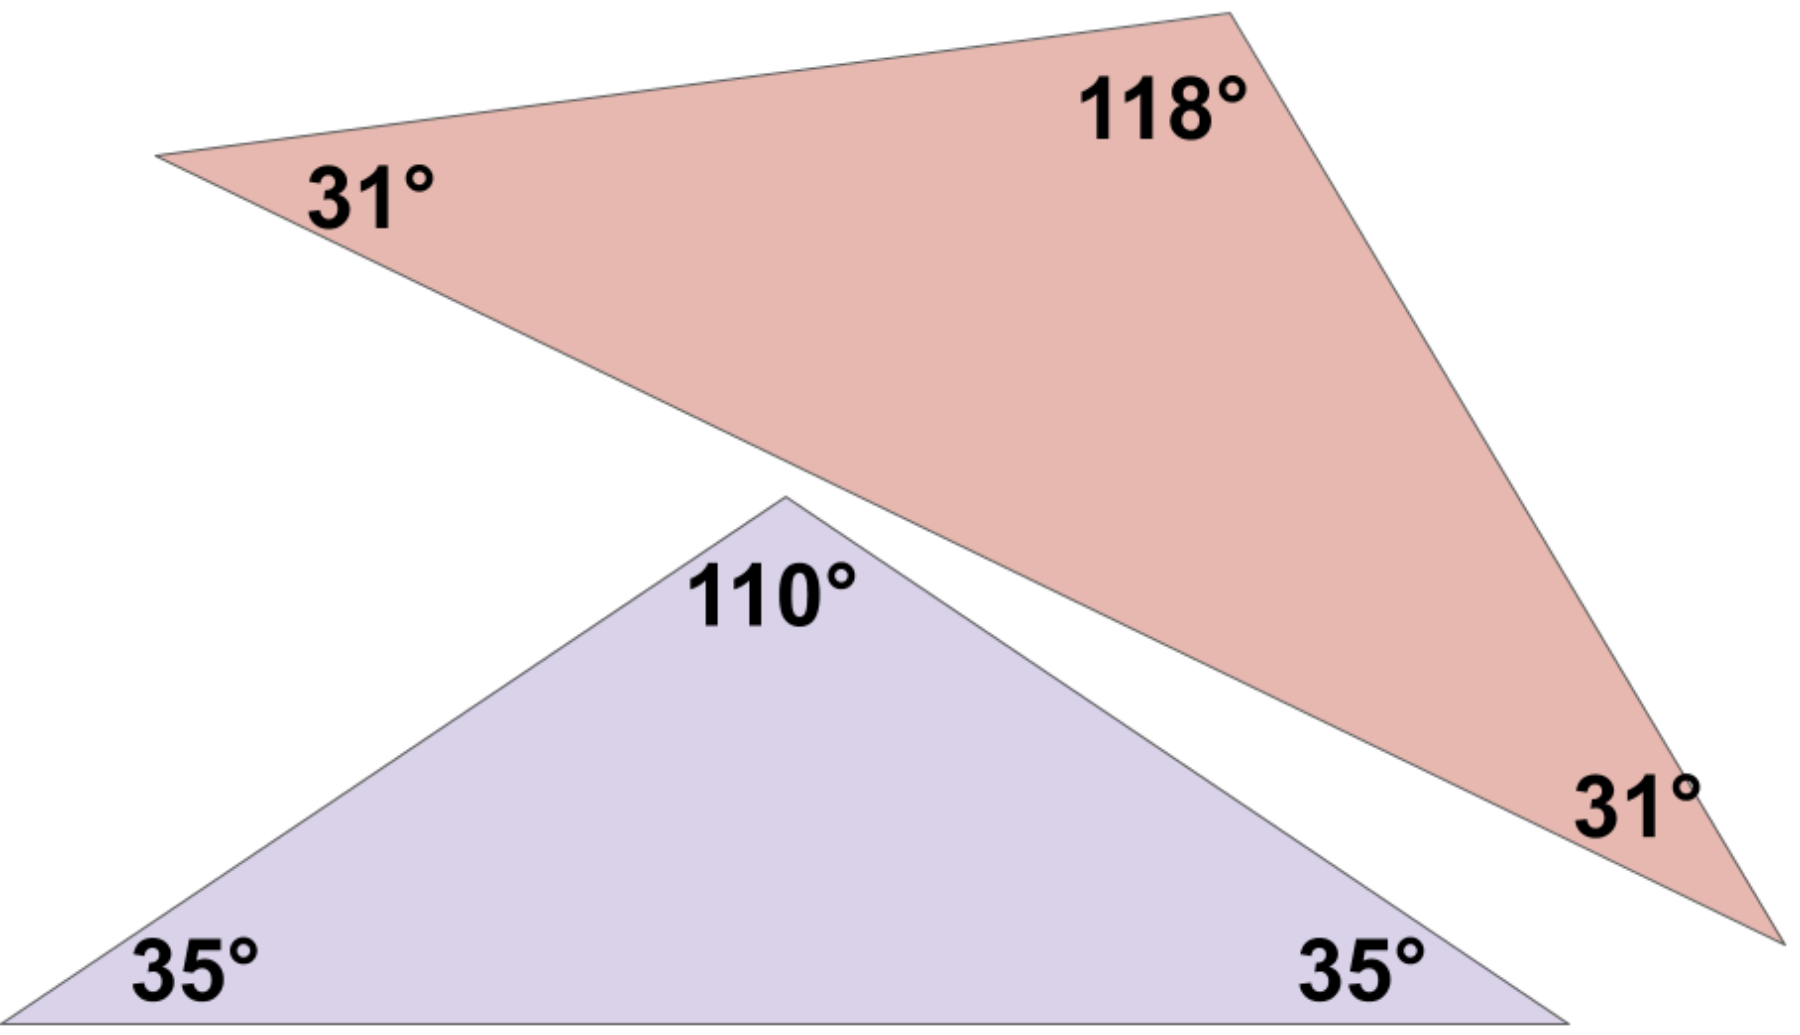 these are both obtuse triangles